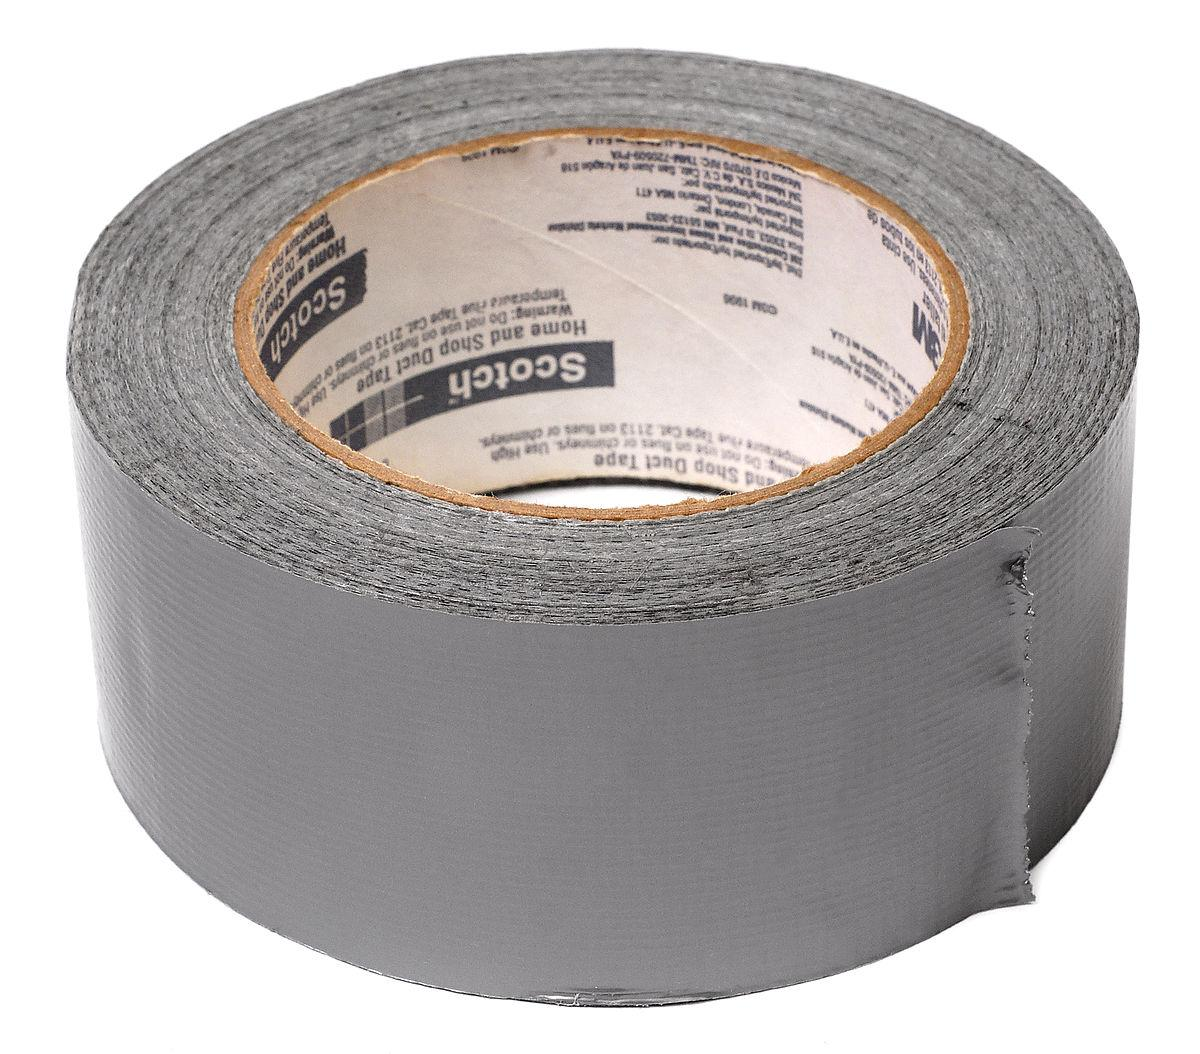 https://upload.wikimedia.org/wikipedia/commons/thumb/8/89/Duct-tape.jpg/1200px-Duct-tape.jpg